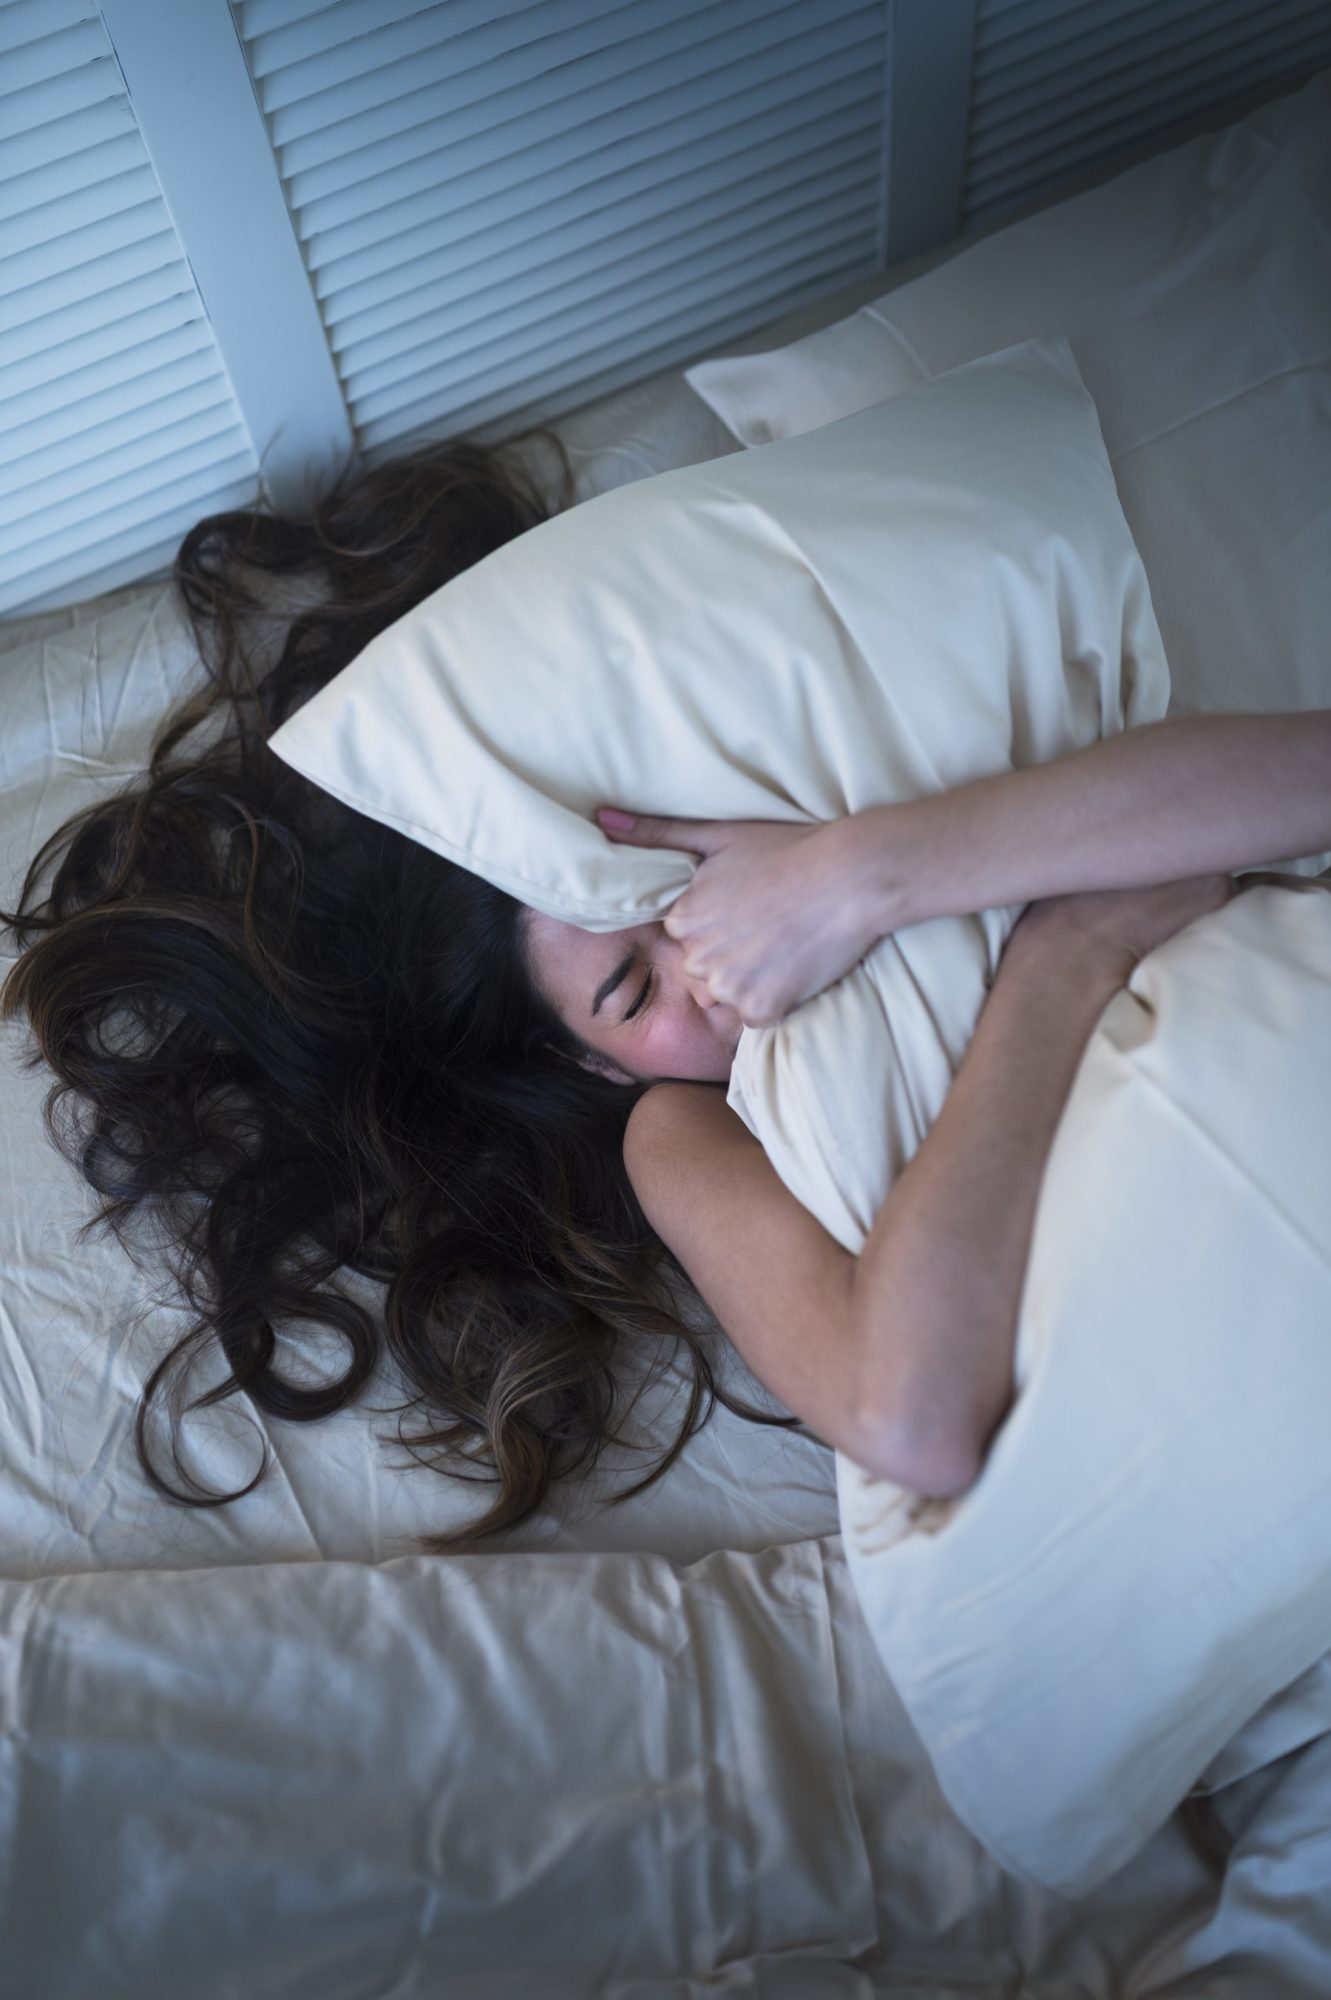 The Surprising Factor That's Robbing You of Sleep